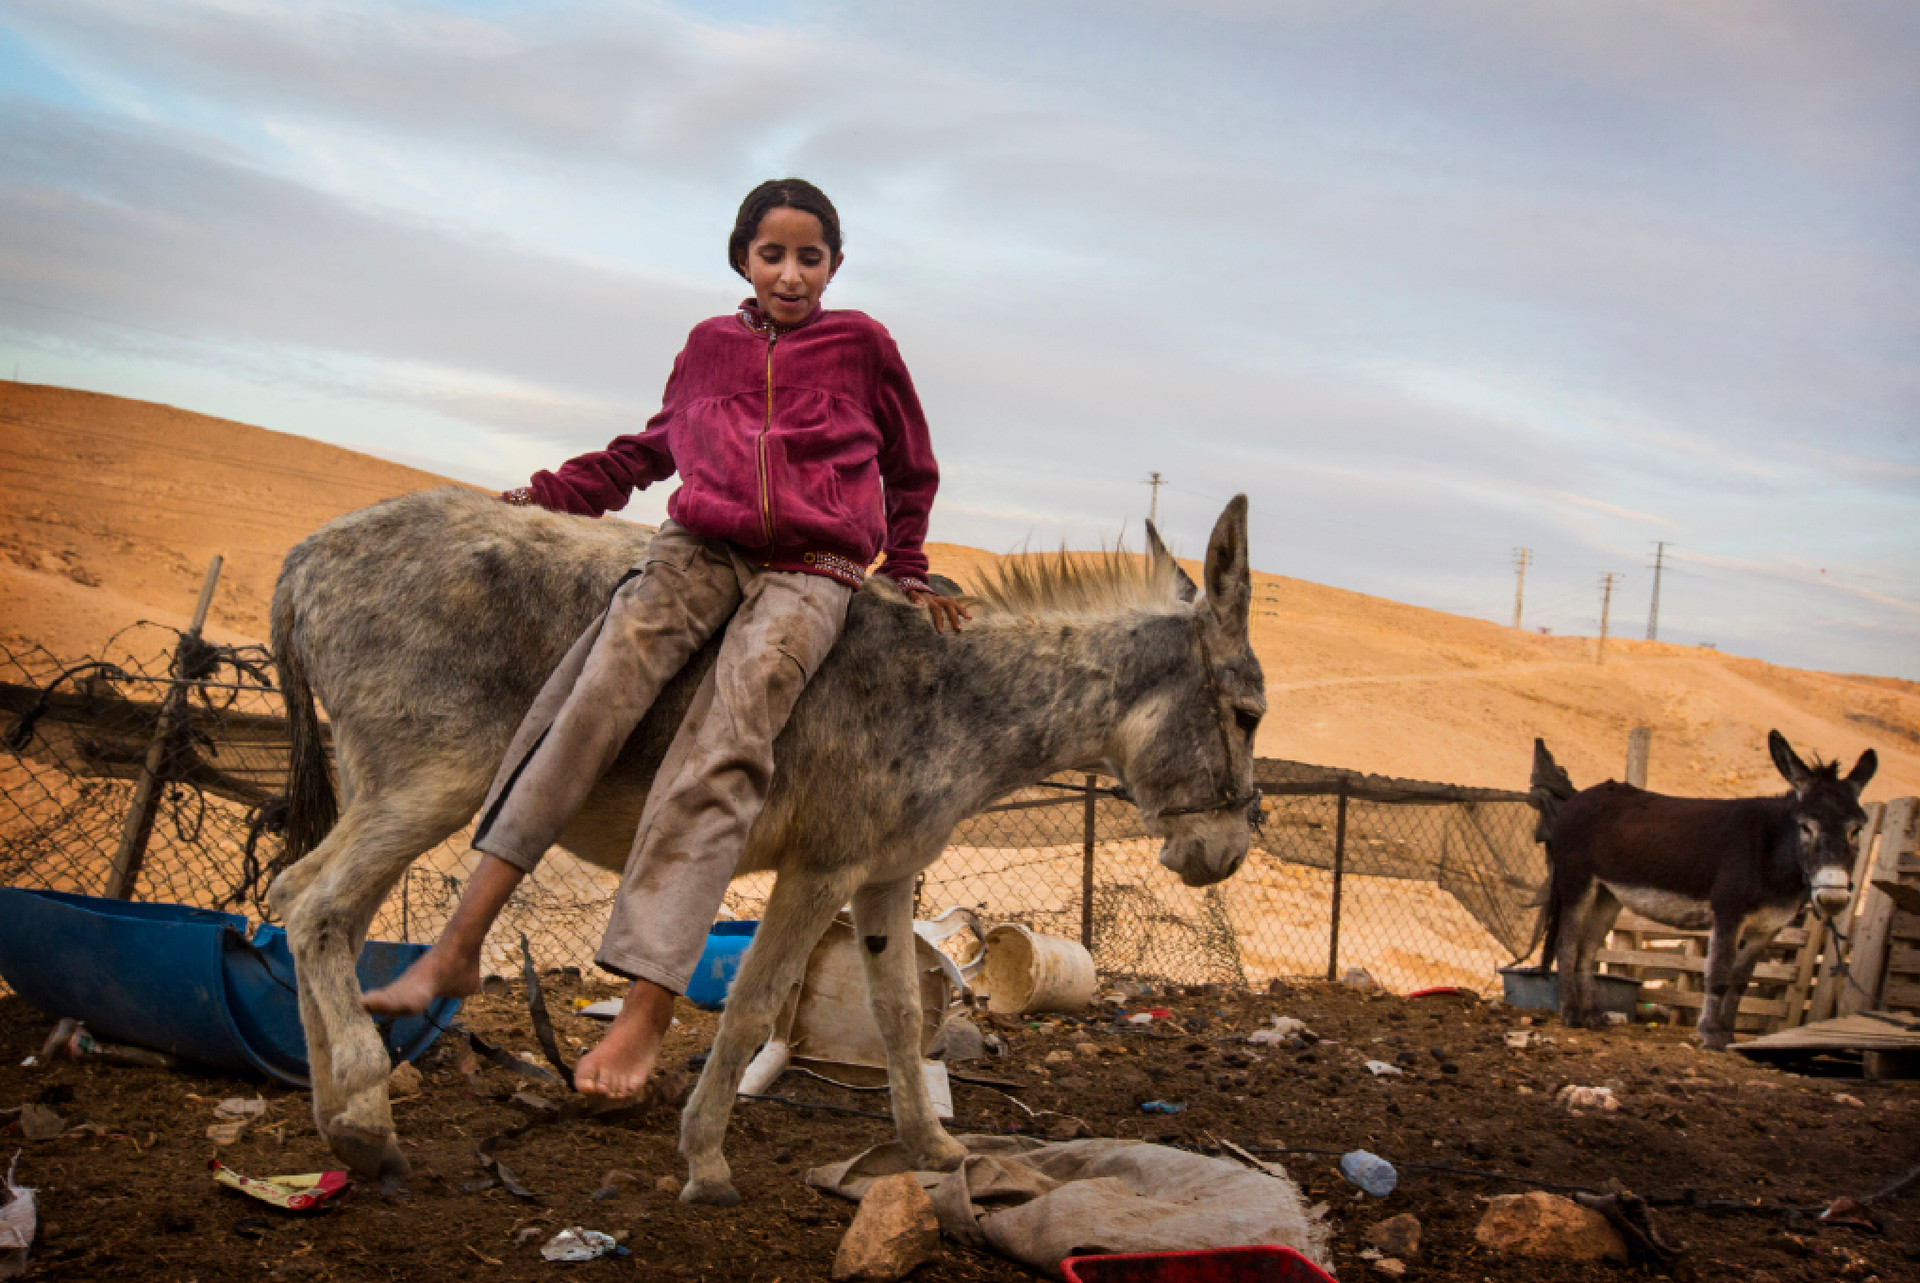 Iman Dahouk finds amusement atop the family donkey. She lives with her family in a Bedouin compound in the West Bank.